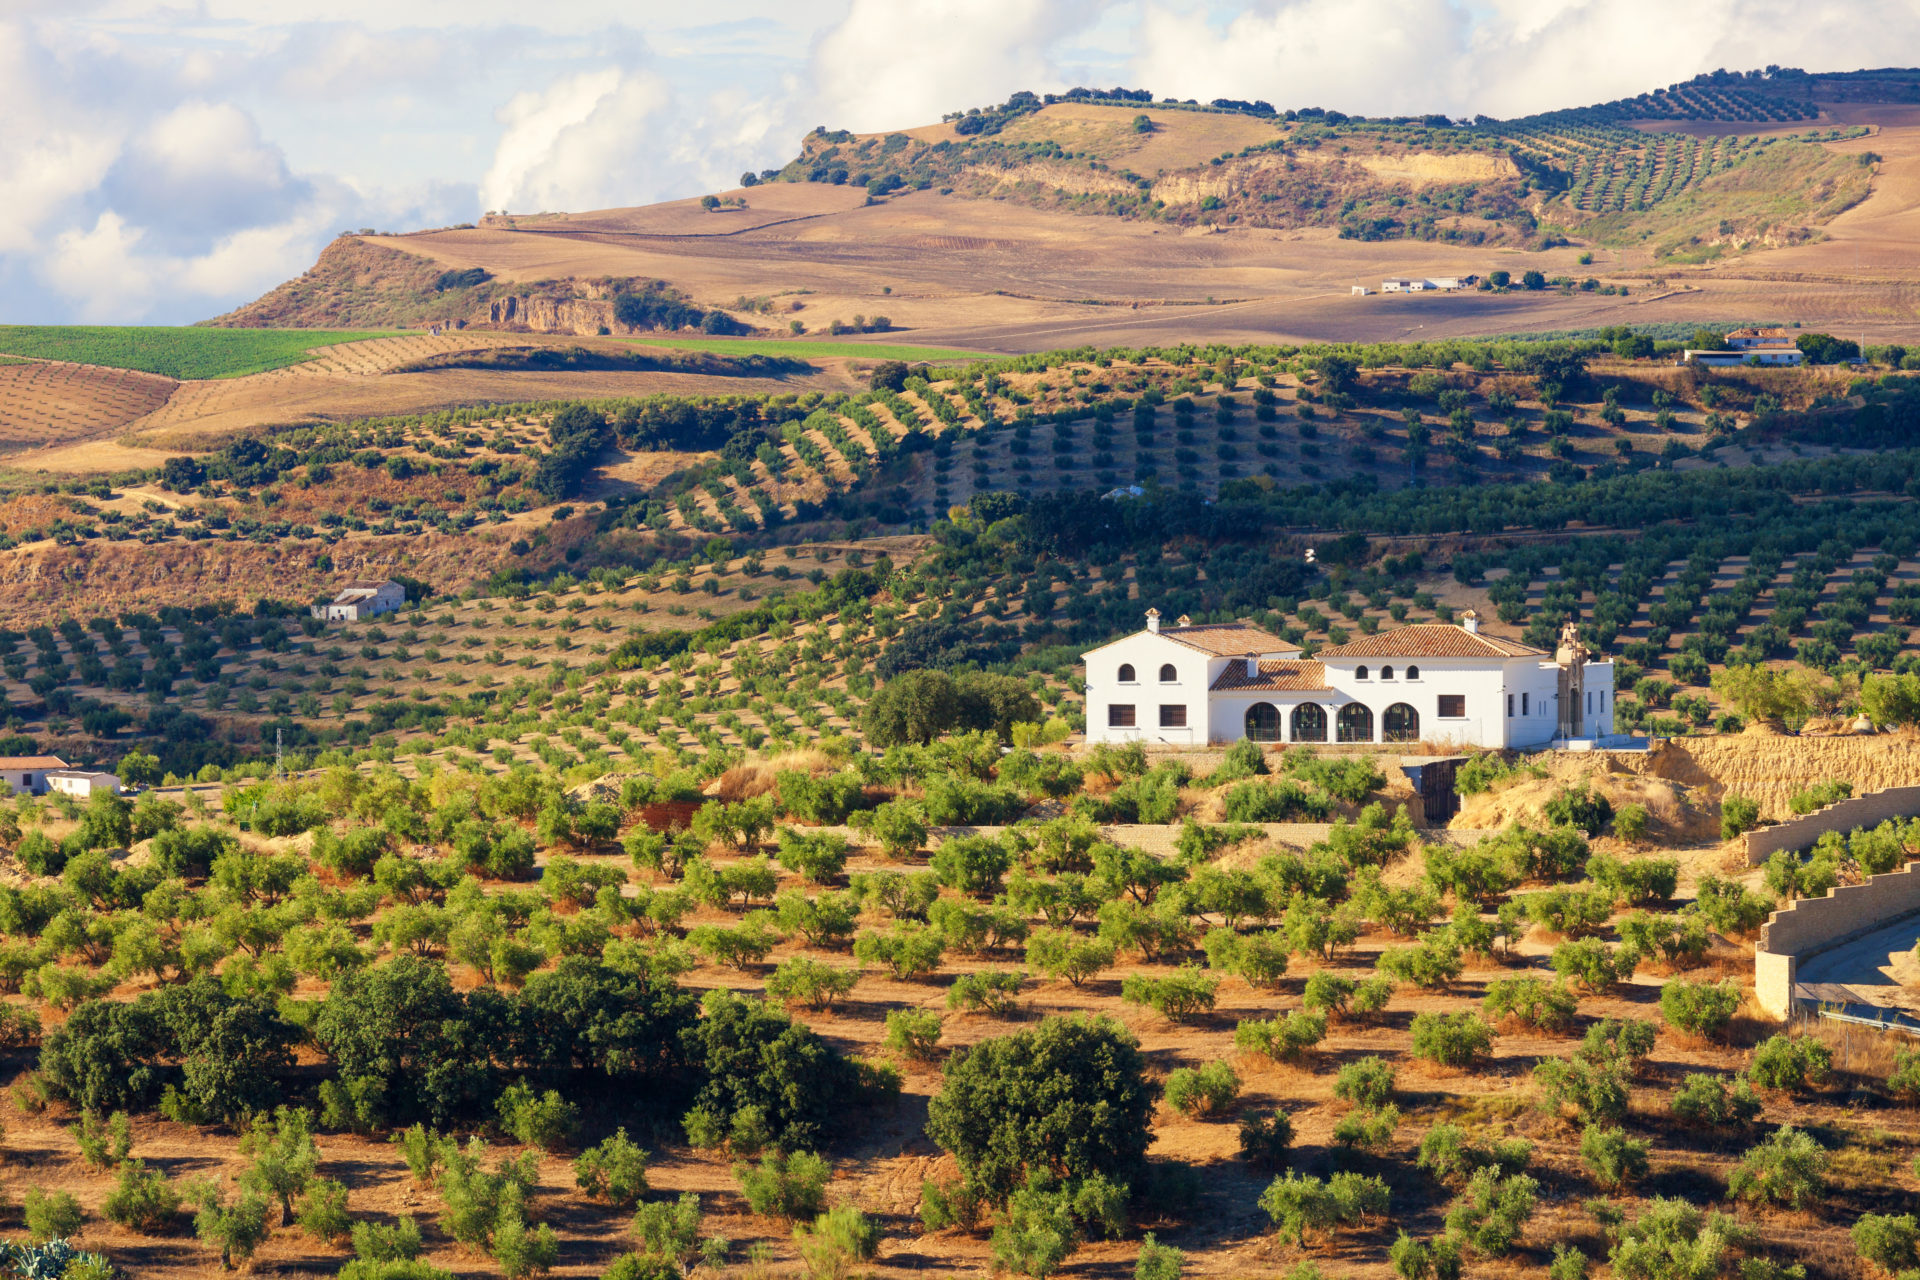 A farmhouse in Andalusia surrounded by olive trees